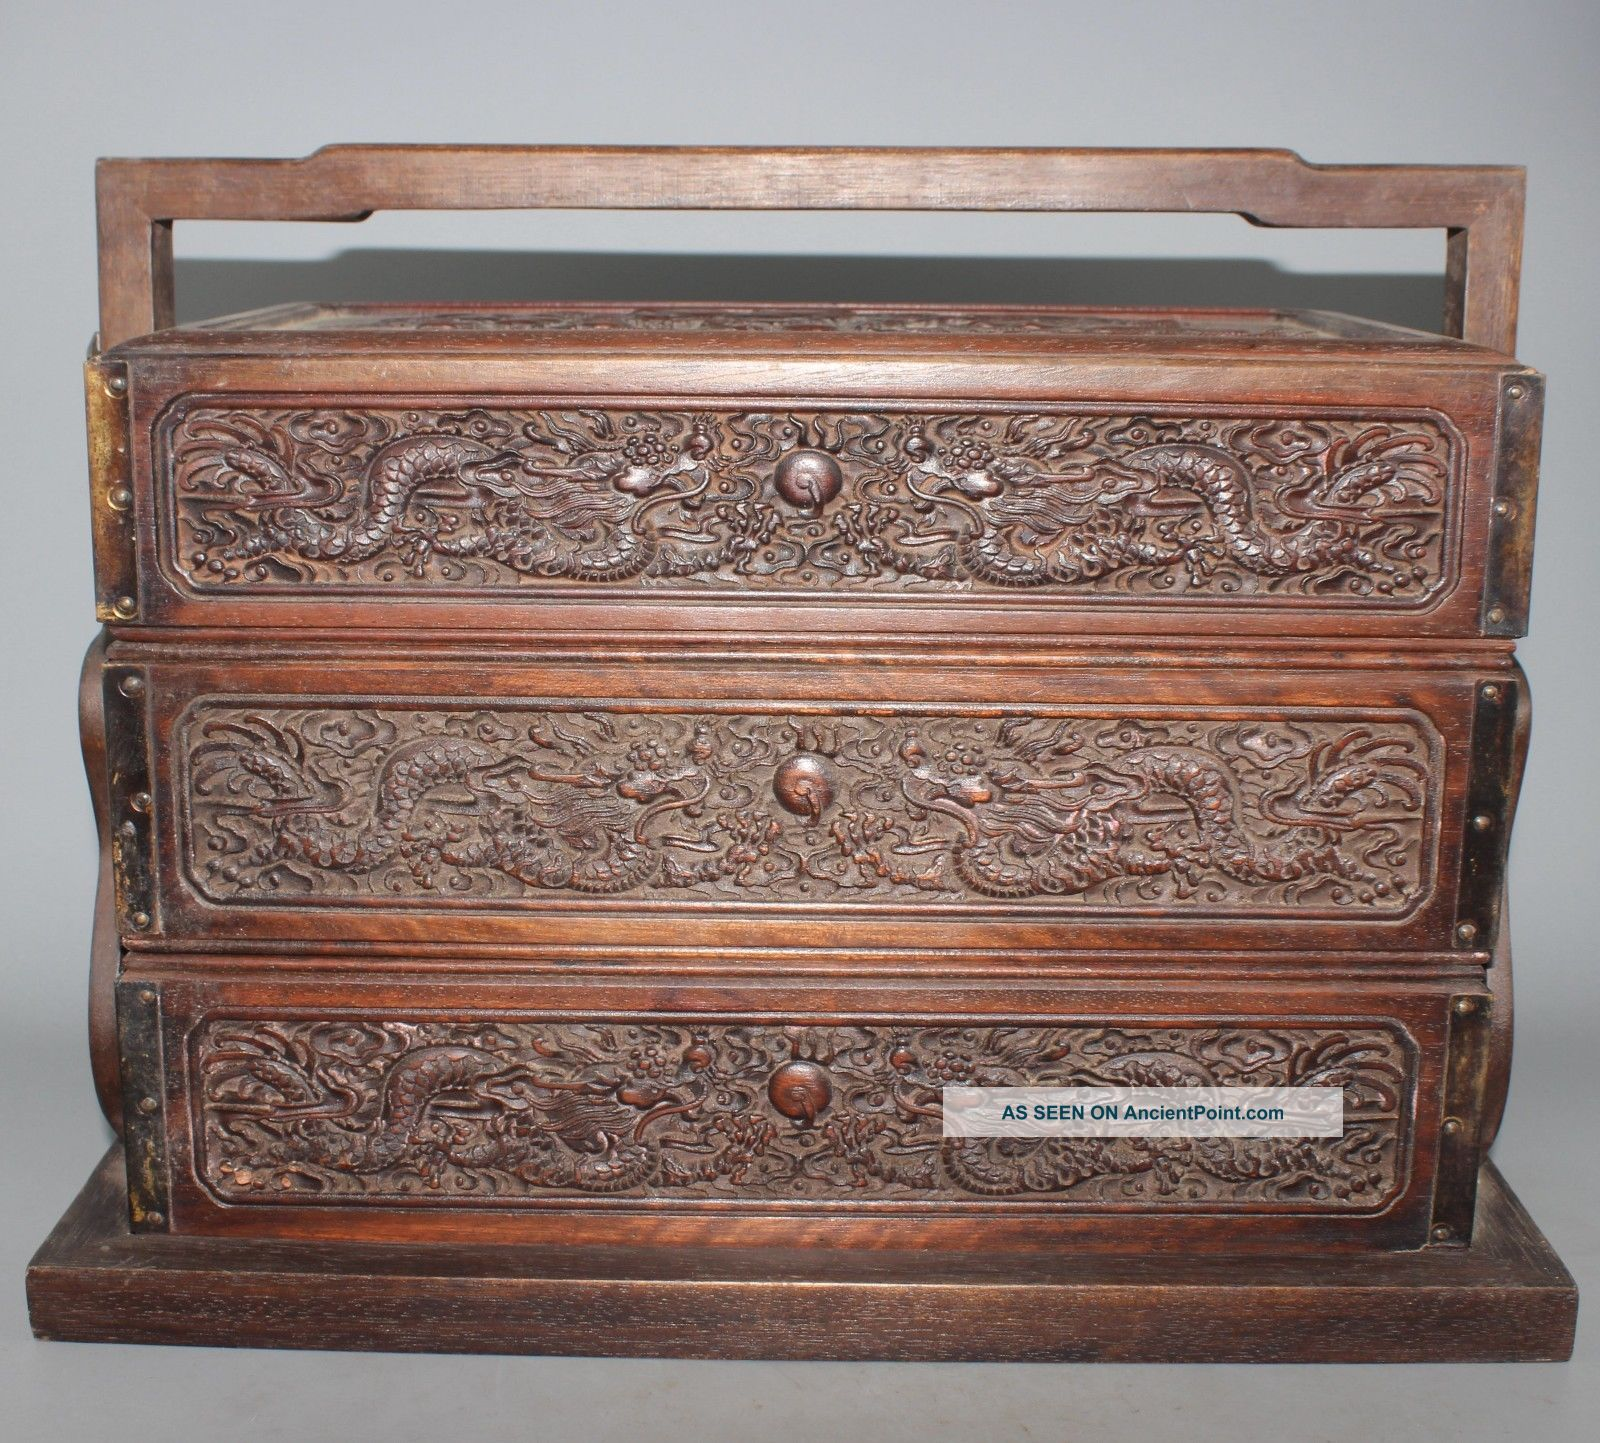 Vintage/antique Ornate Carved Wood Chinese Box/storage Chest Stamp On Bottom Boxes photo